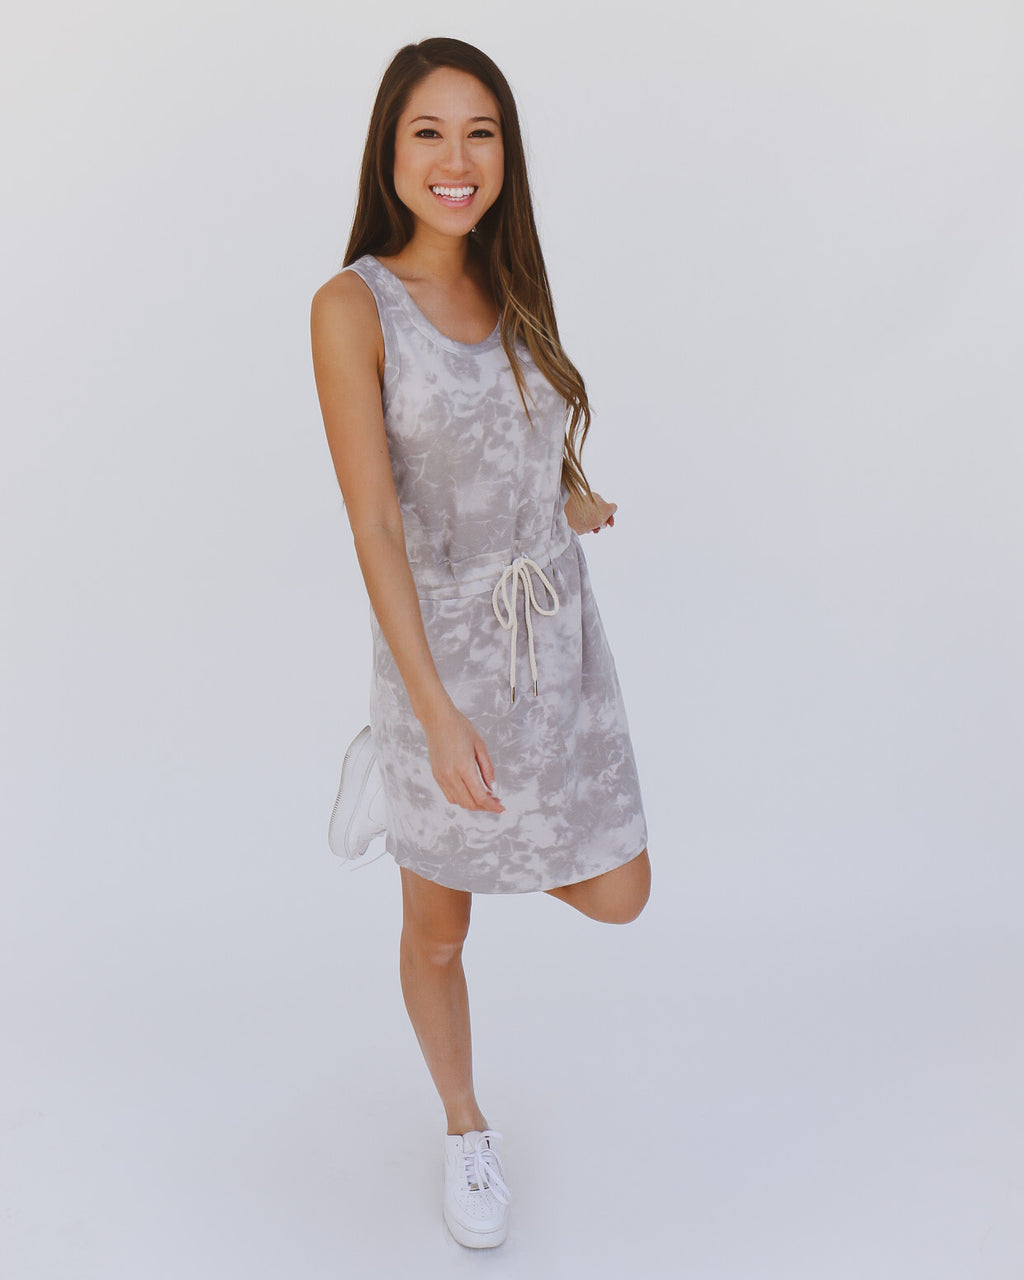 Grayce Dress